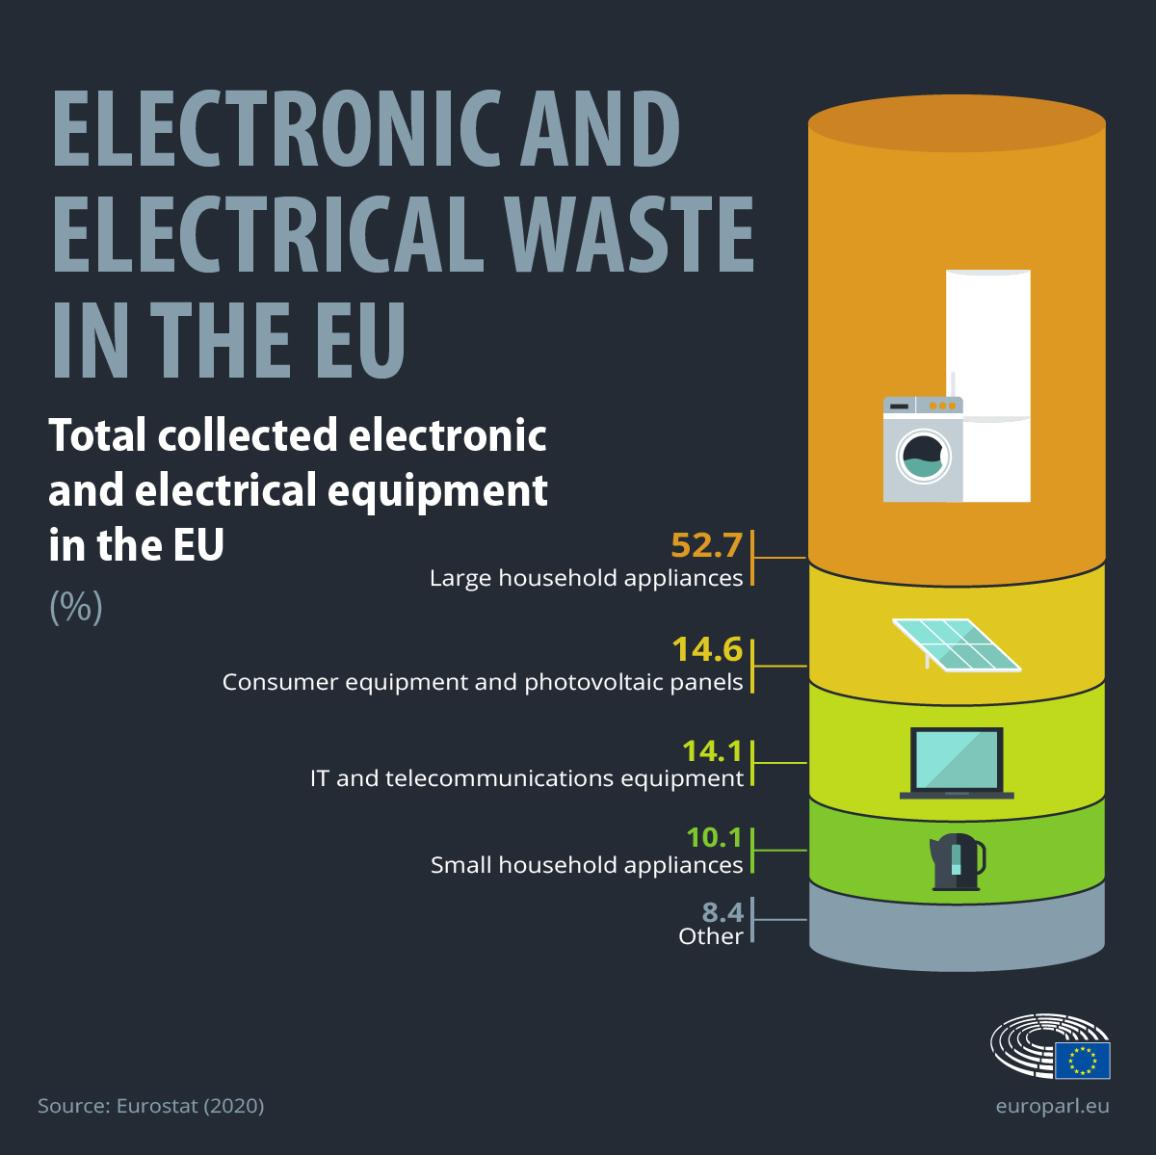 Infographic on electronic and electrical waste in the EU